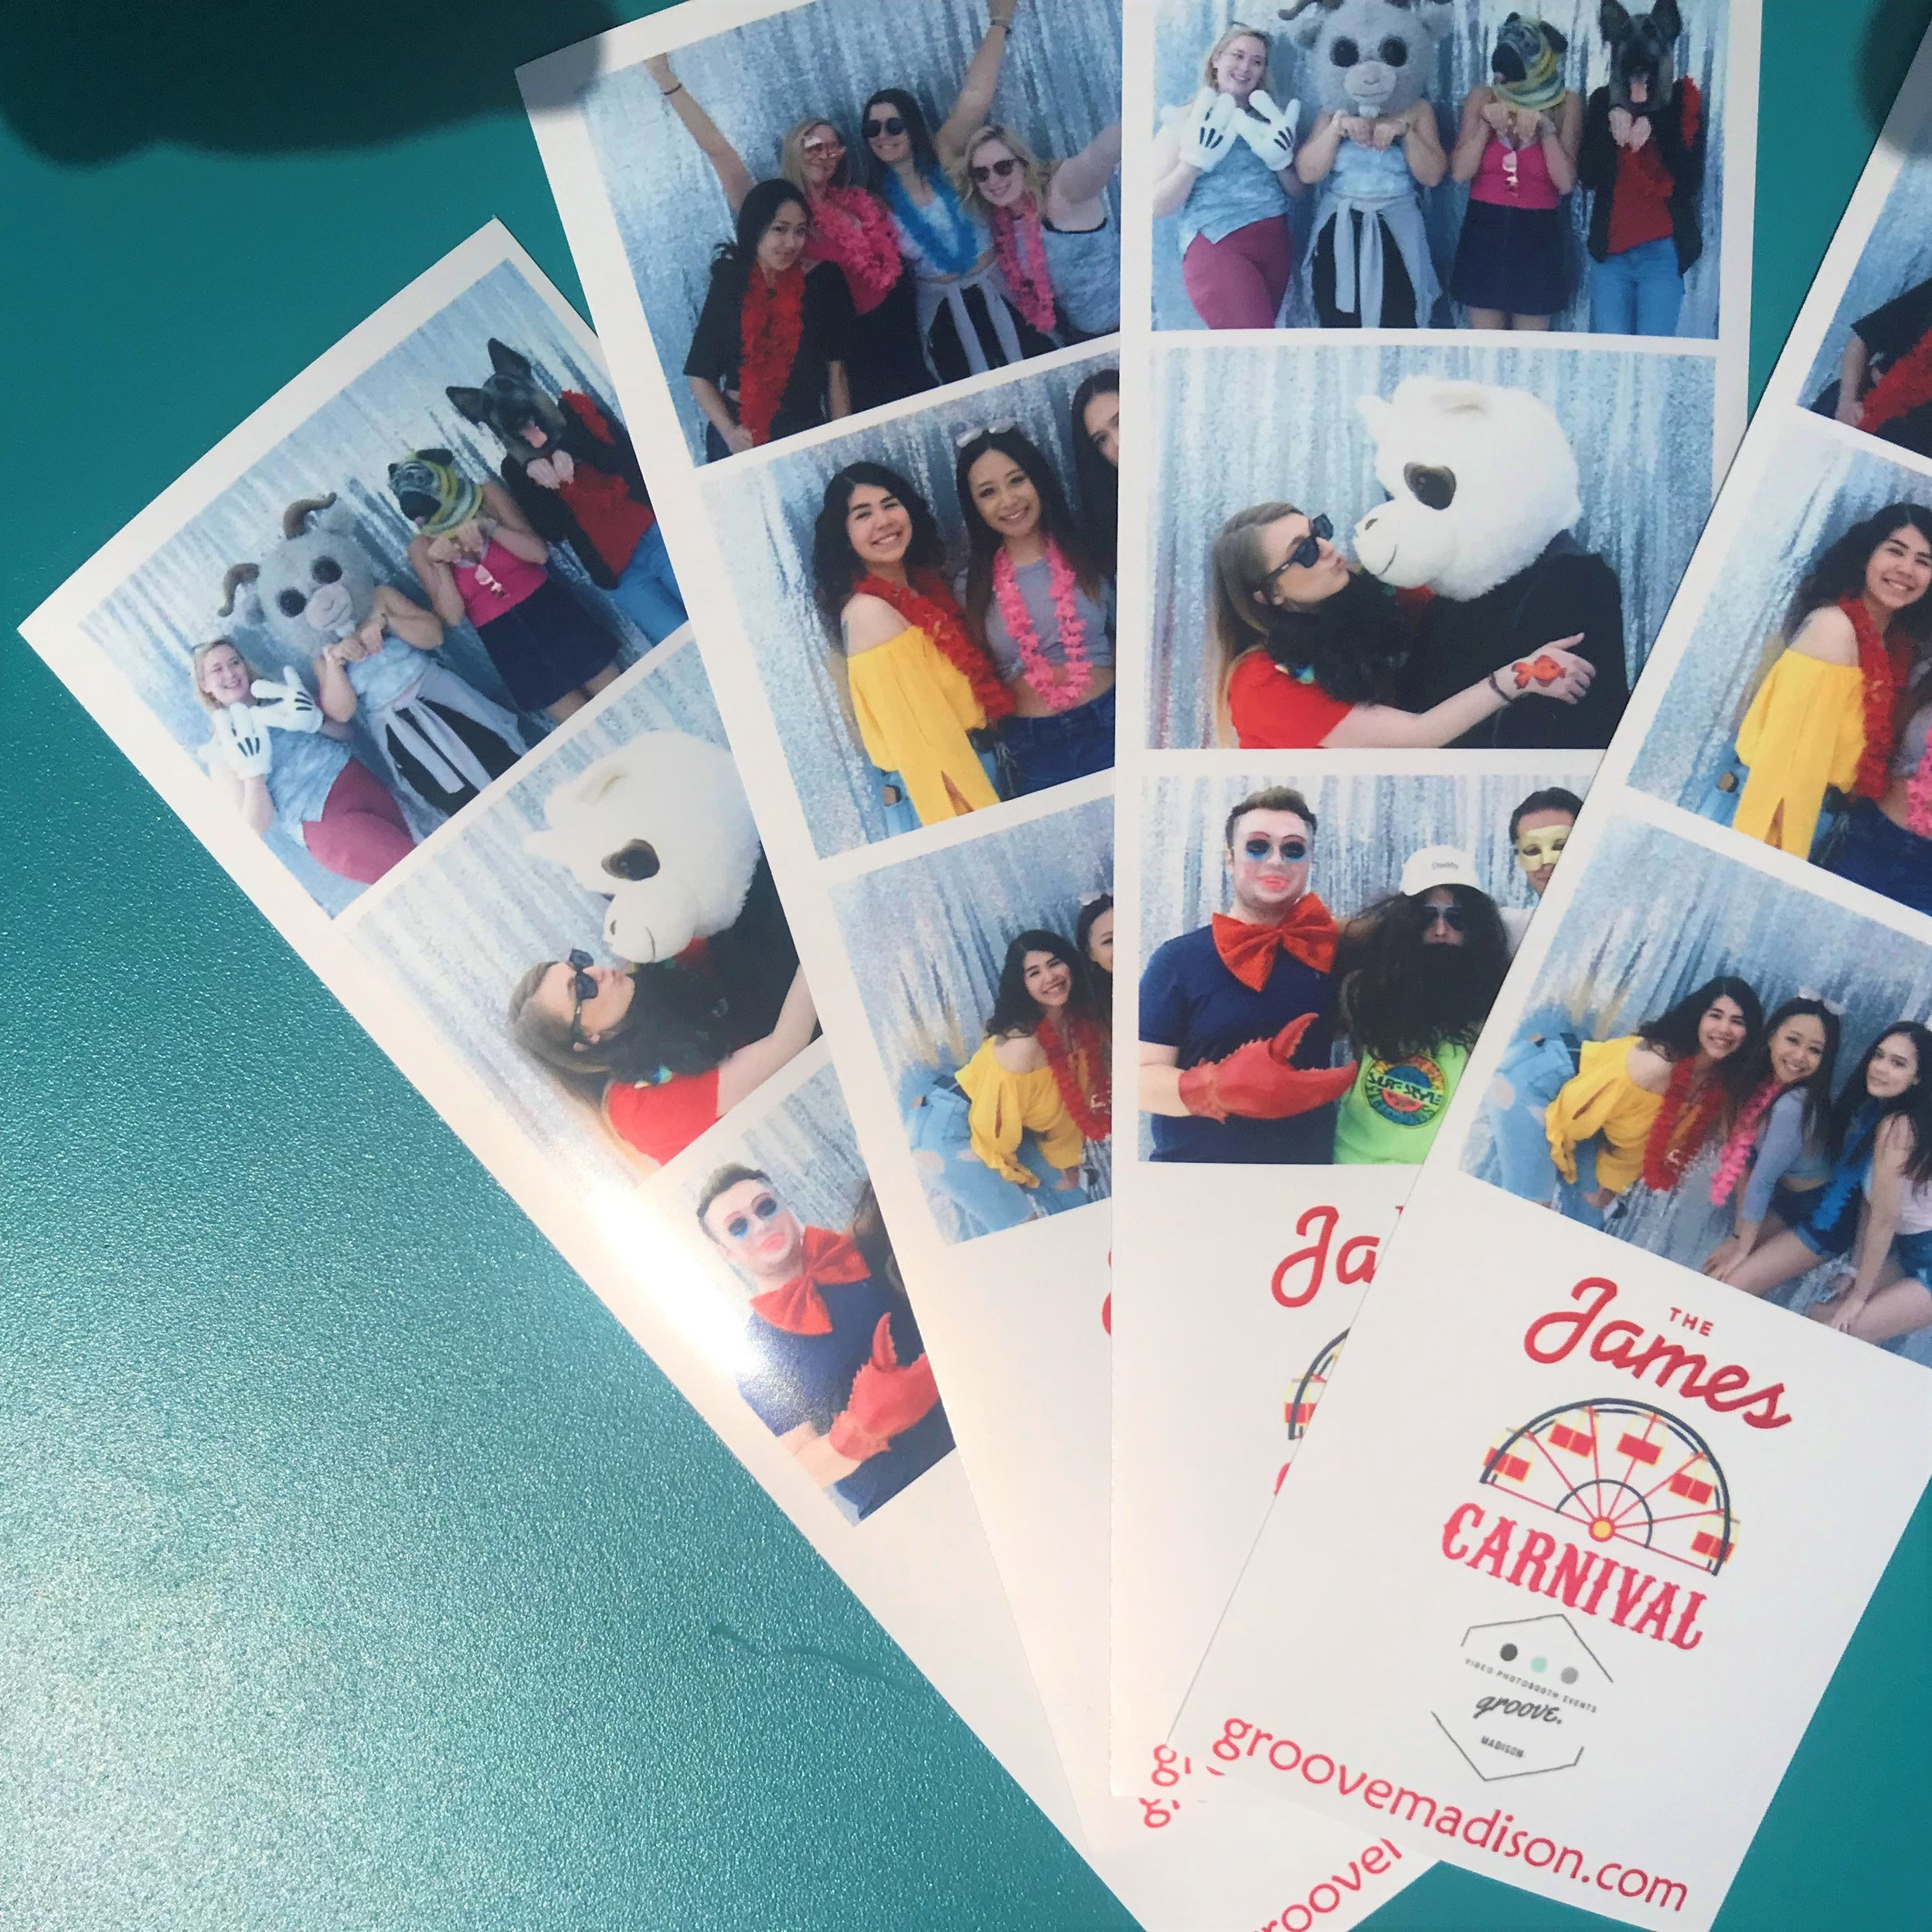 Photo strips from our photobooth! This was on location at a rooftop party!